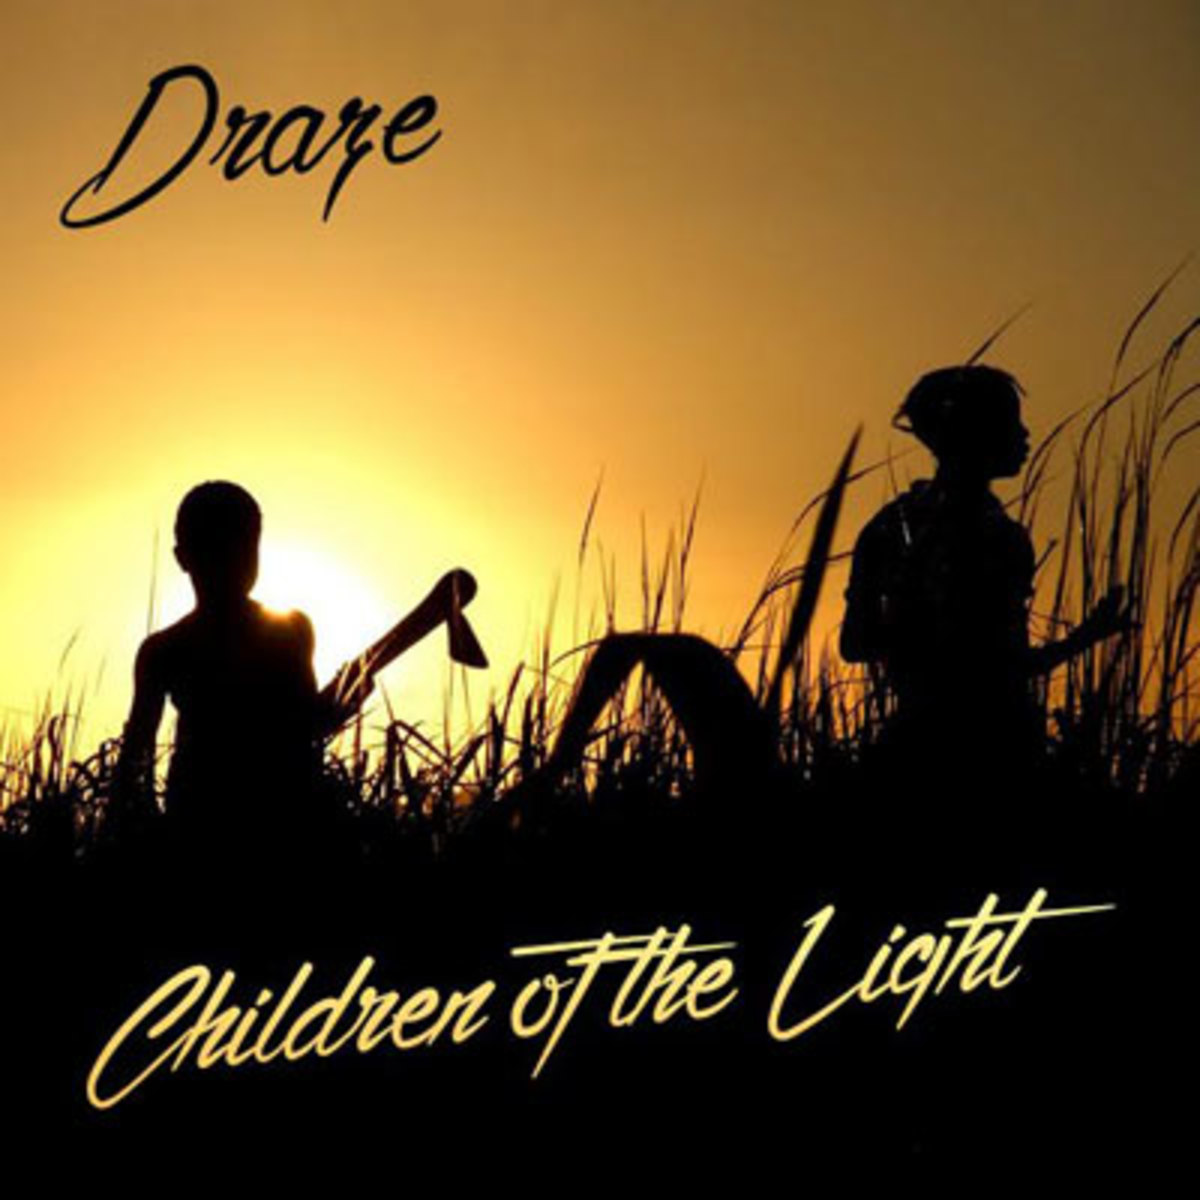 draze-childrenoflight.jpg